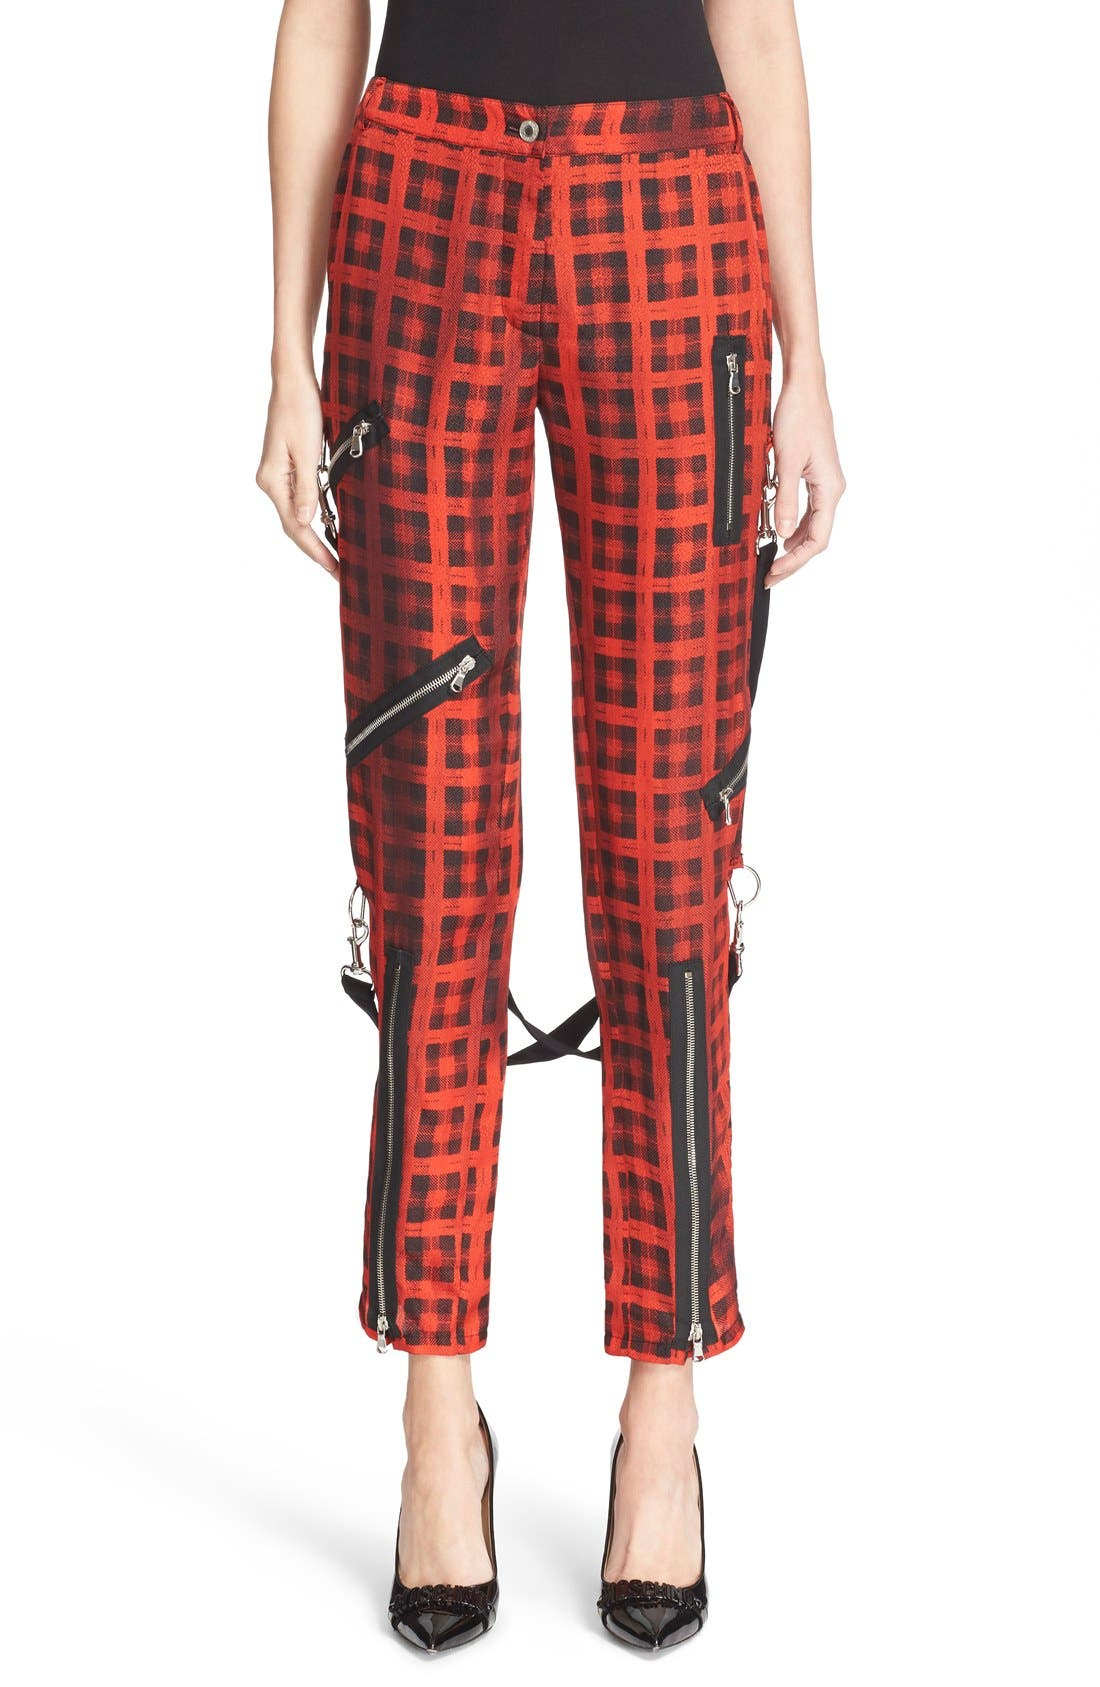 Alternate Image 1 Selected - Moschino Plaid Print Ankle Pants with Detachable Suspenders